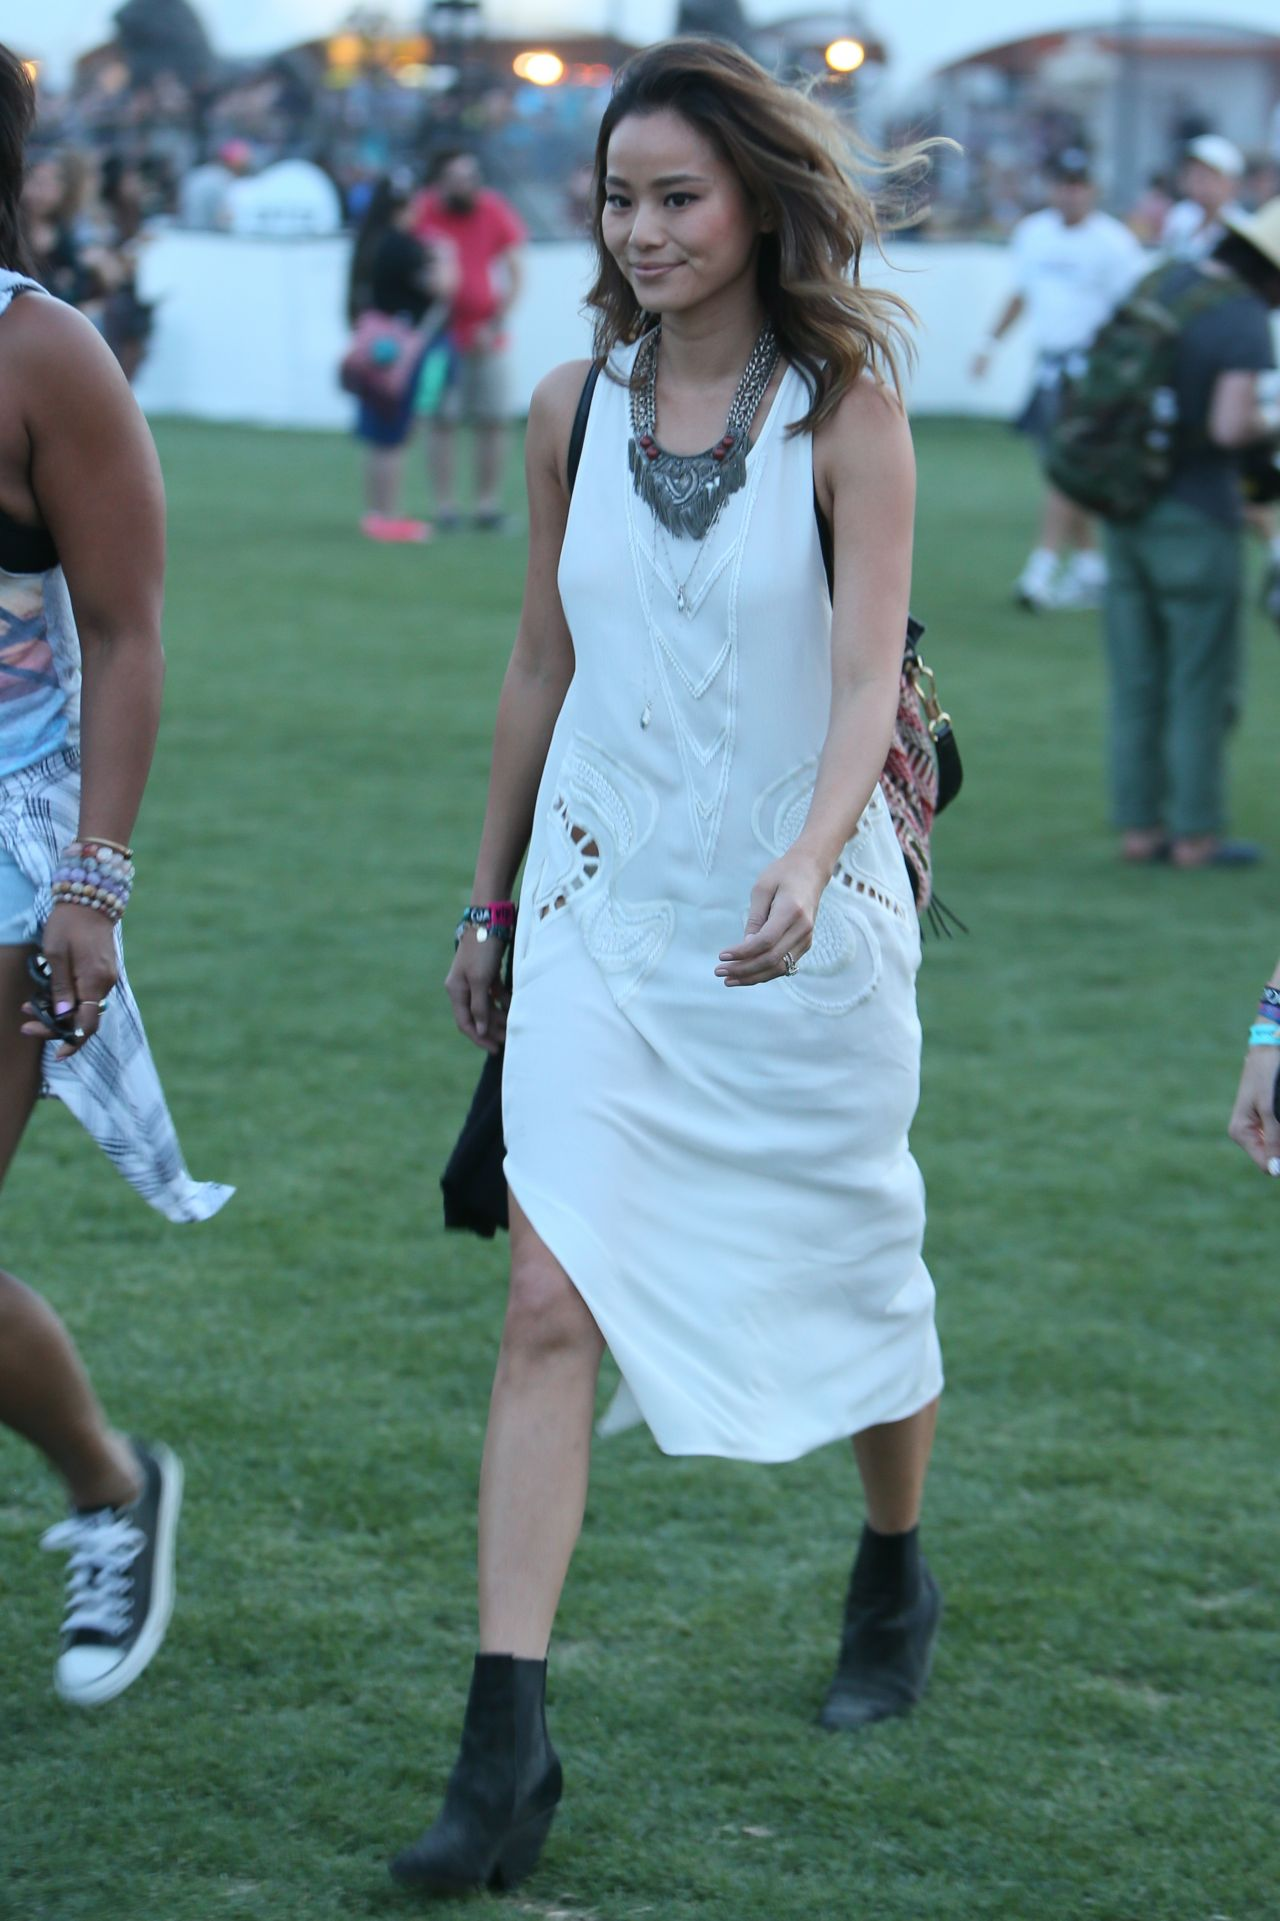 jamie-chung-2015-coachella-music-festival-in-indio-day-1_4